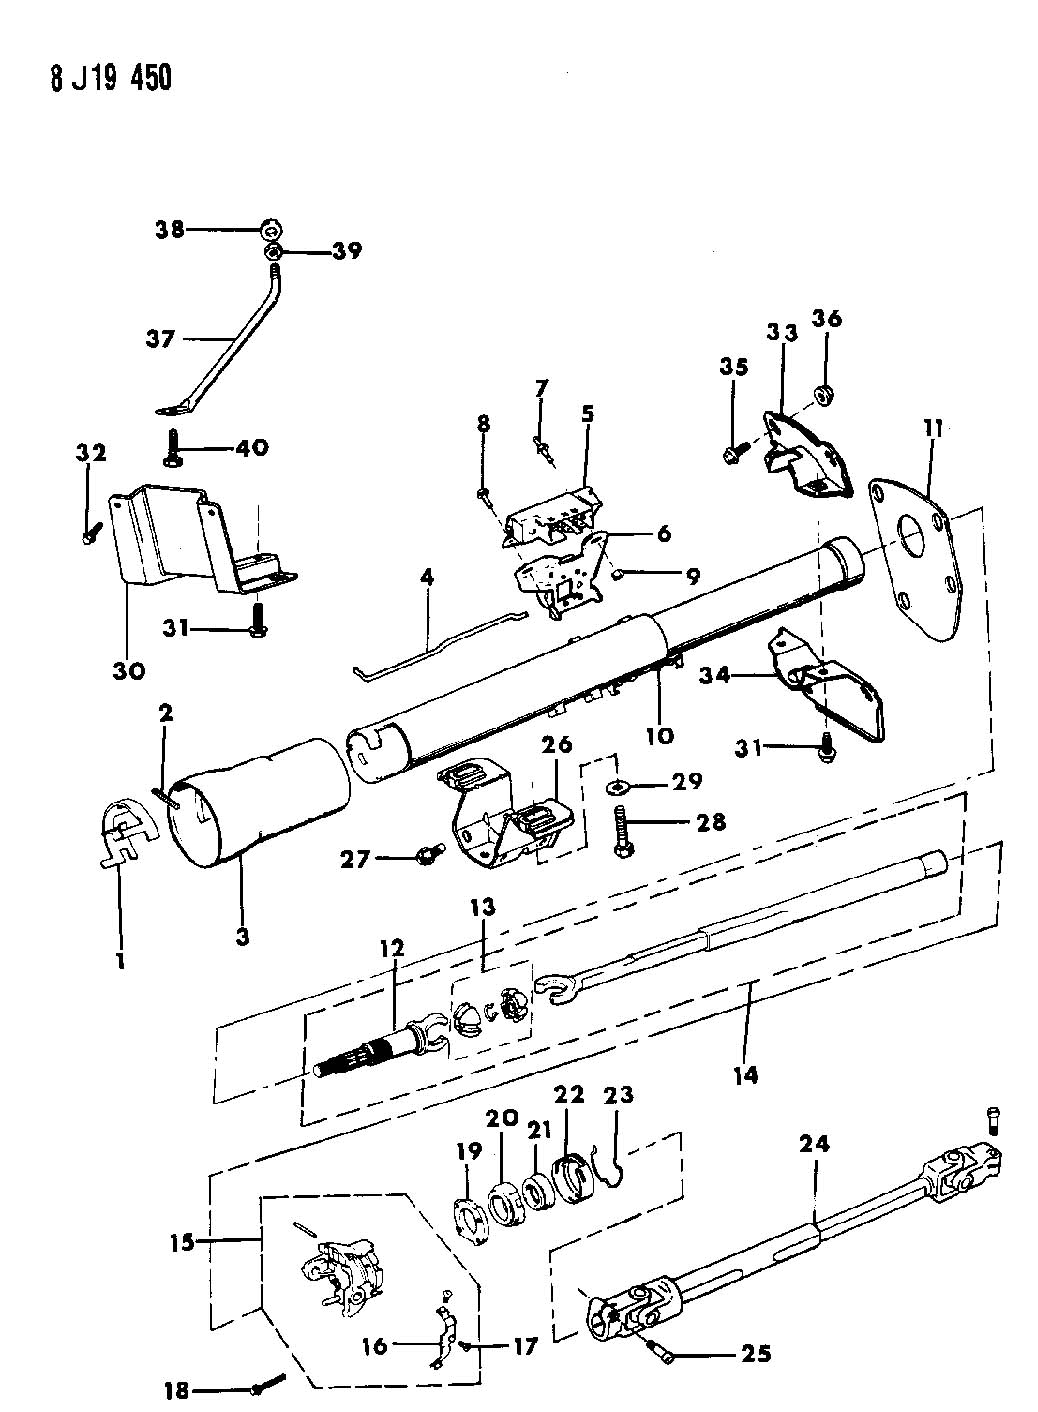 1984 jeep cj7 wiring diagram 1987 jeep cj7 wiring diagram